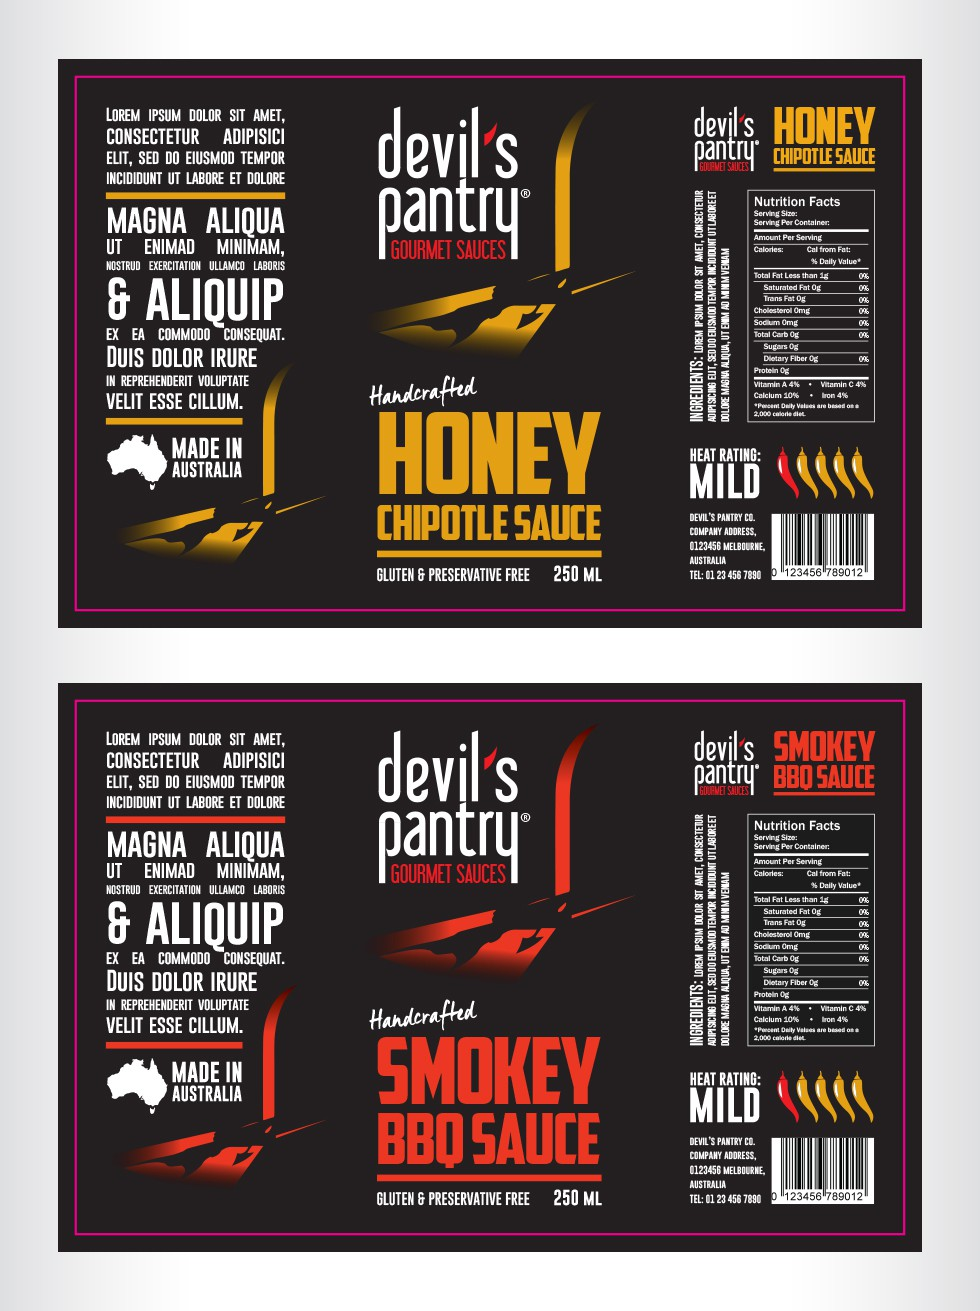 Design a BOLD & Sophisticated label for the Devil's Pantry condiment range.